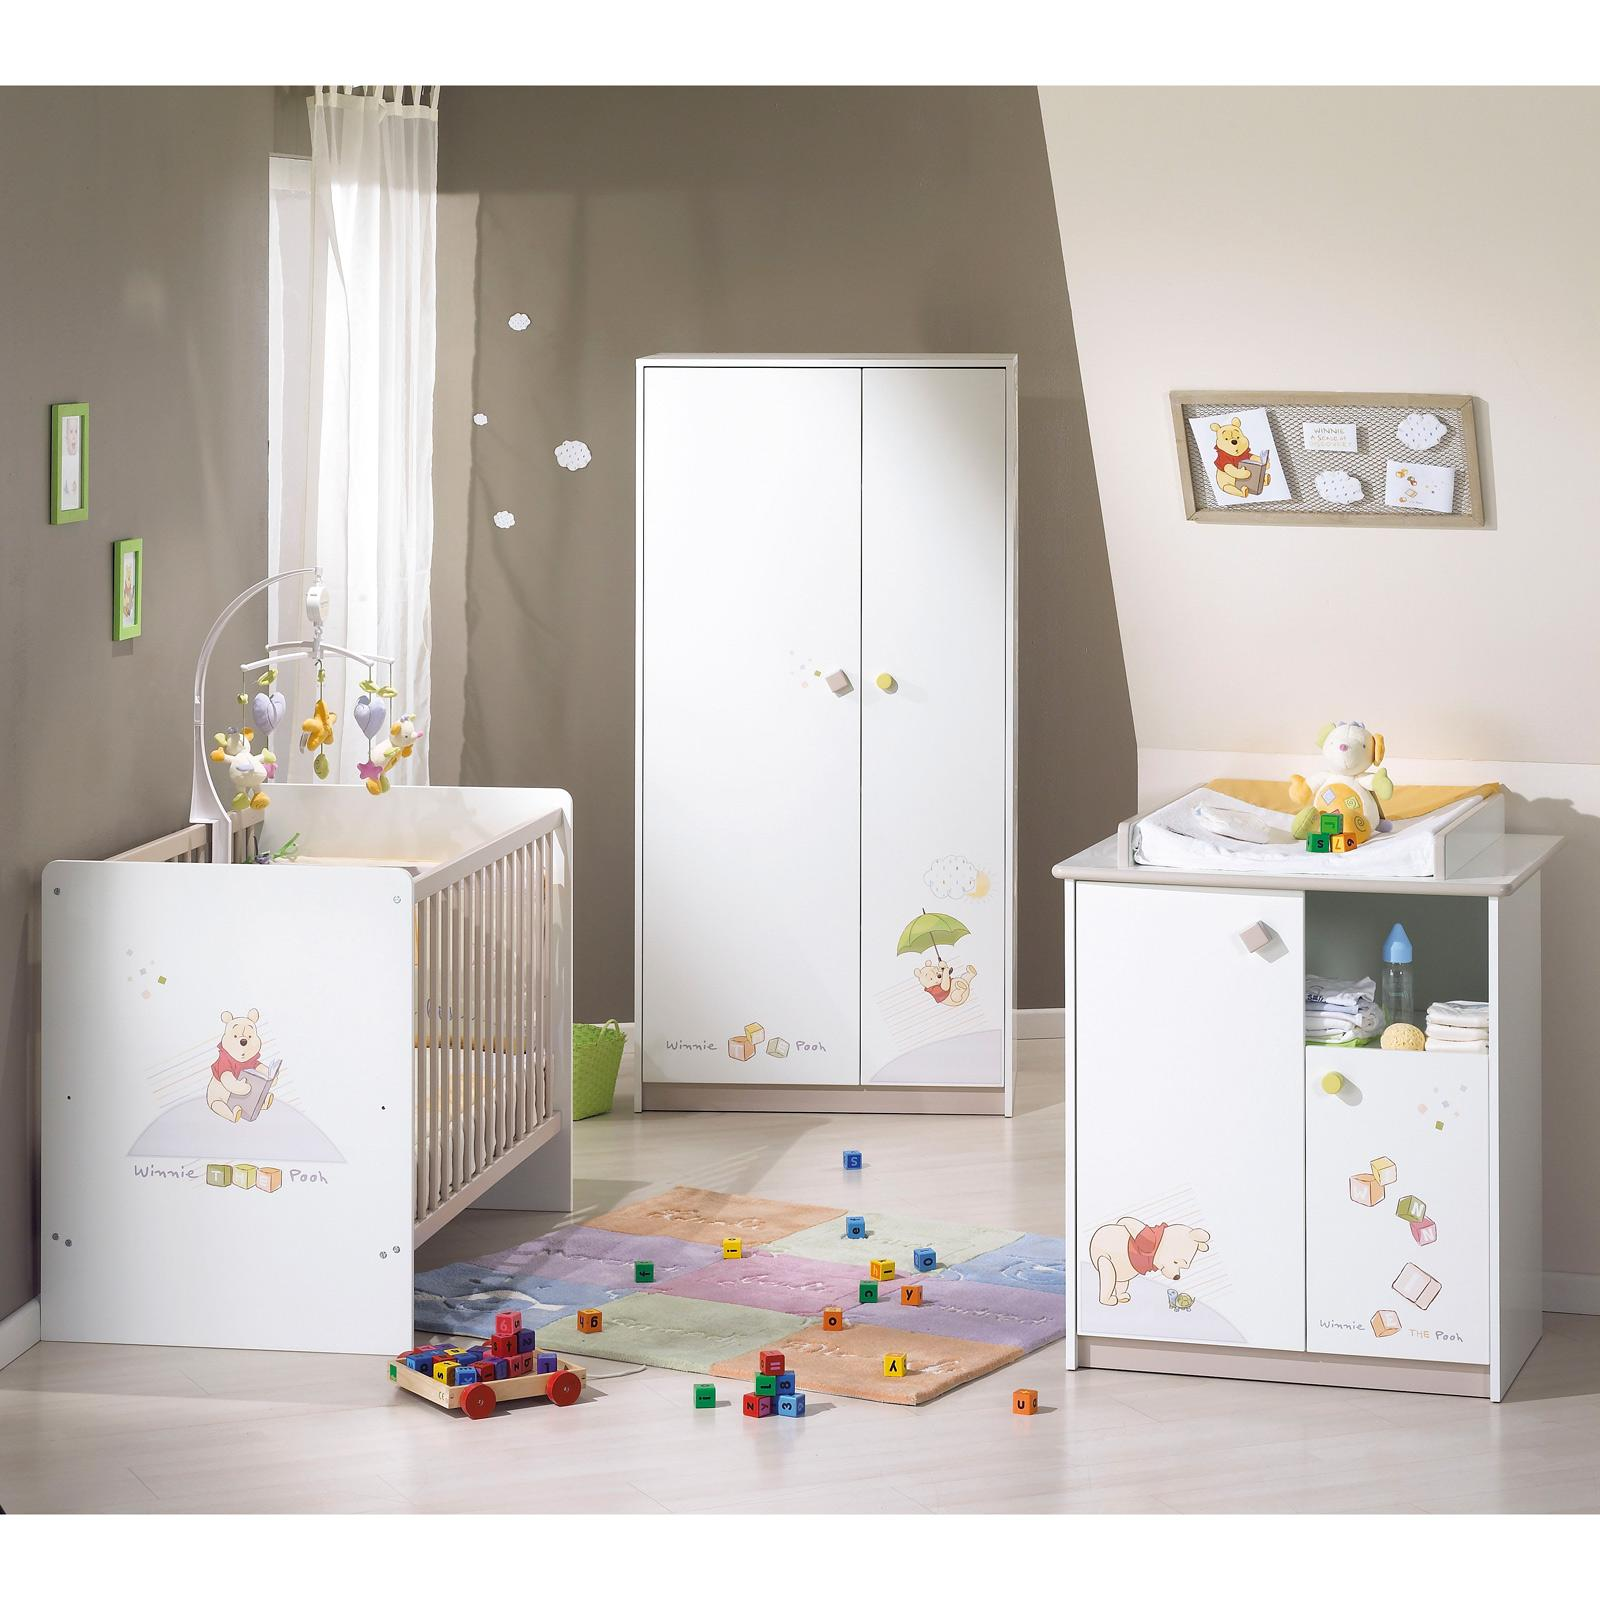 Decoration chambre winnie l ourson pas cher for Pour decoration maison